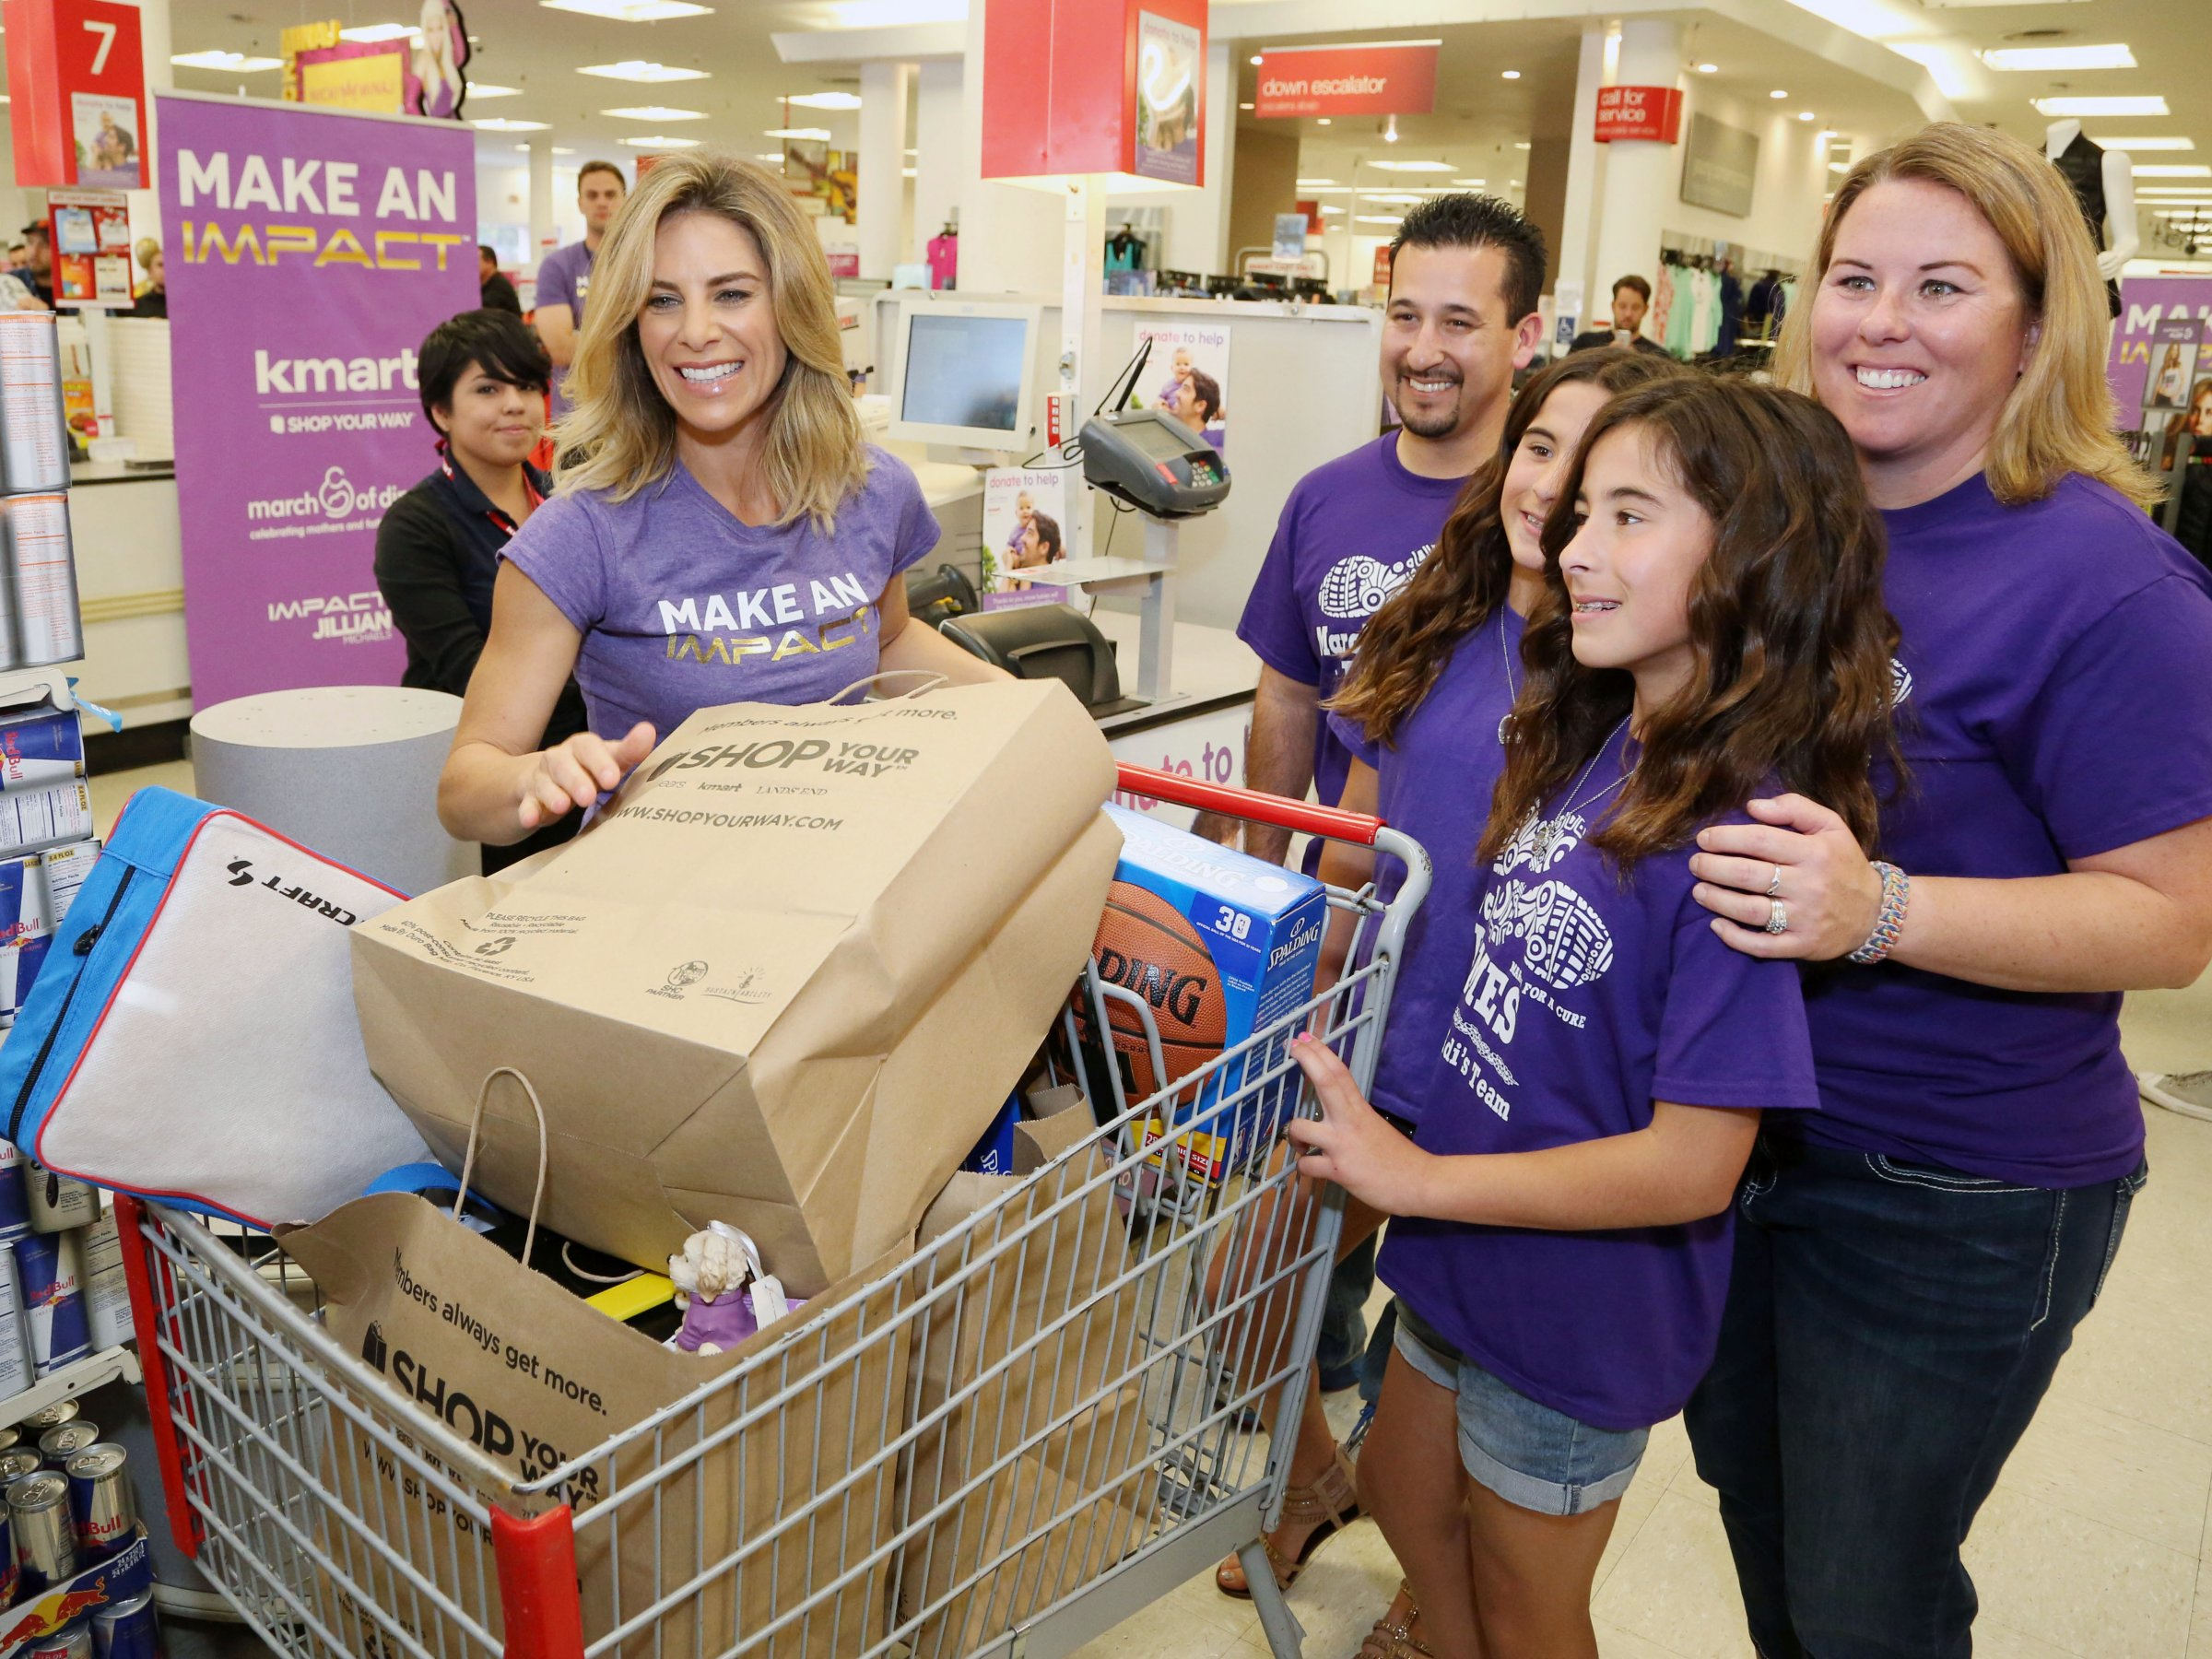 Jillian Michaels community service